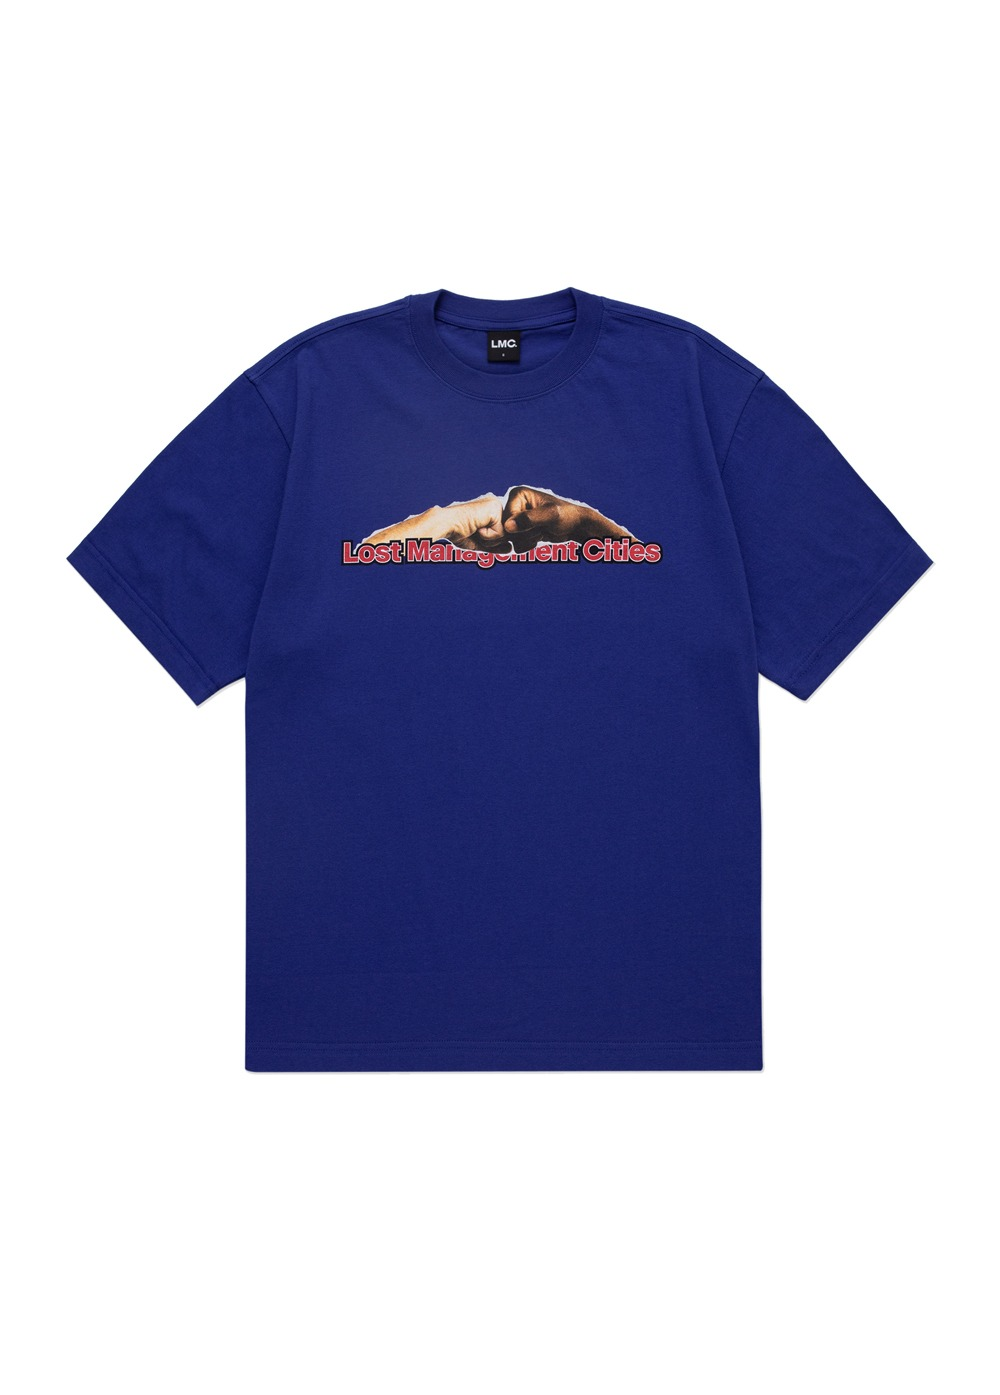 LMC FIST BUMPS TEE royal blue